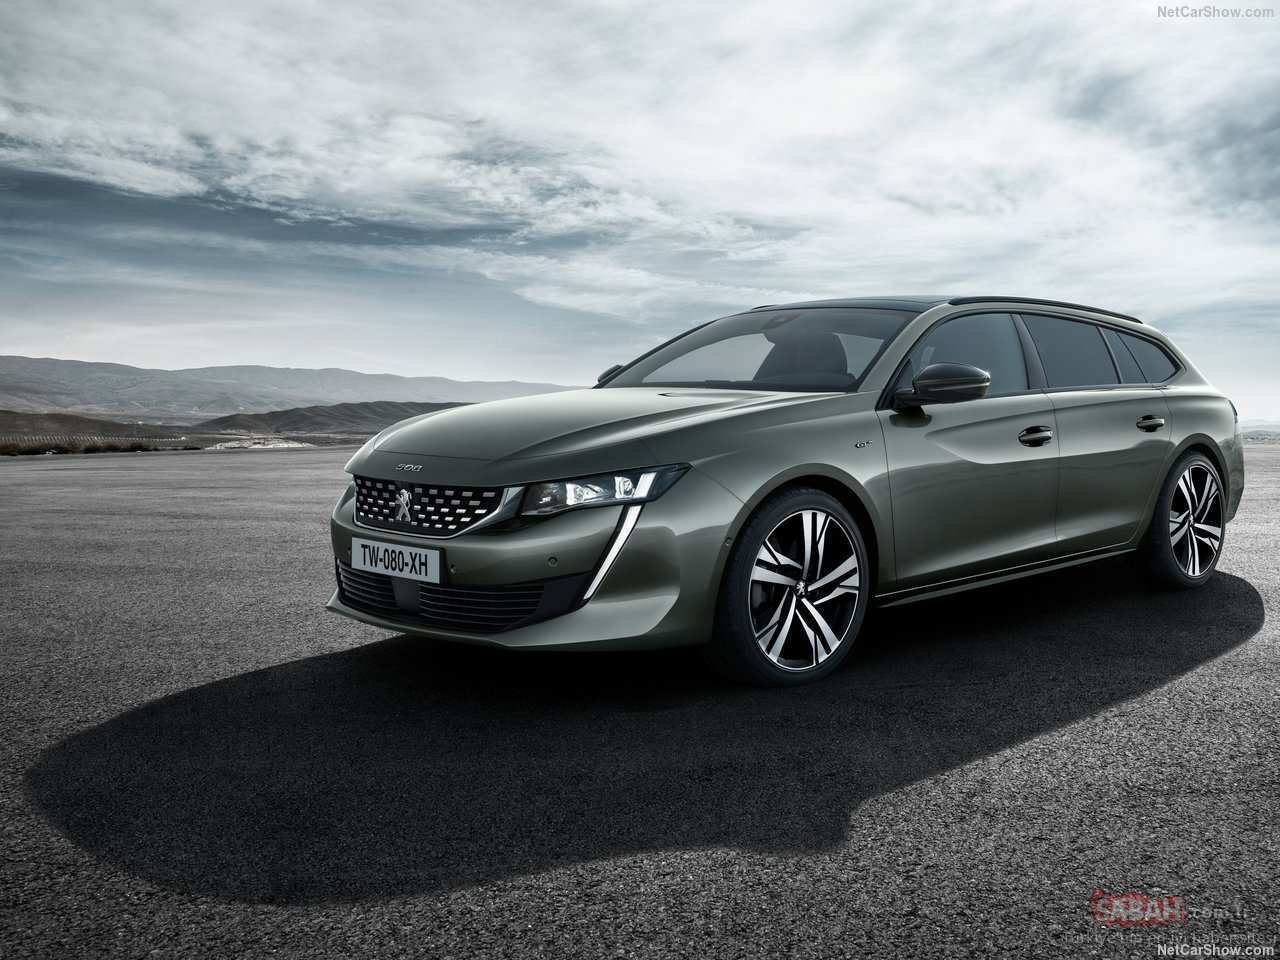 47 A Peugeot En 2019 Price And Release Date